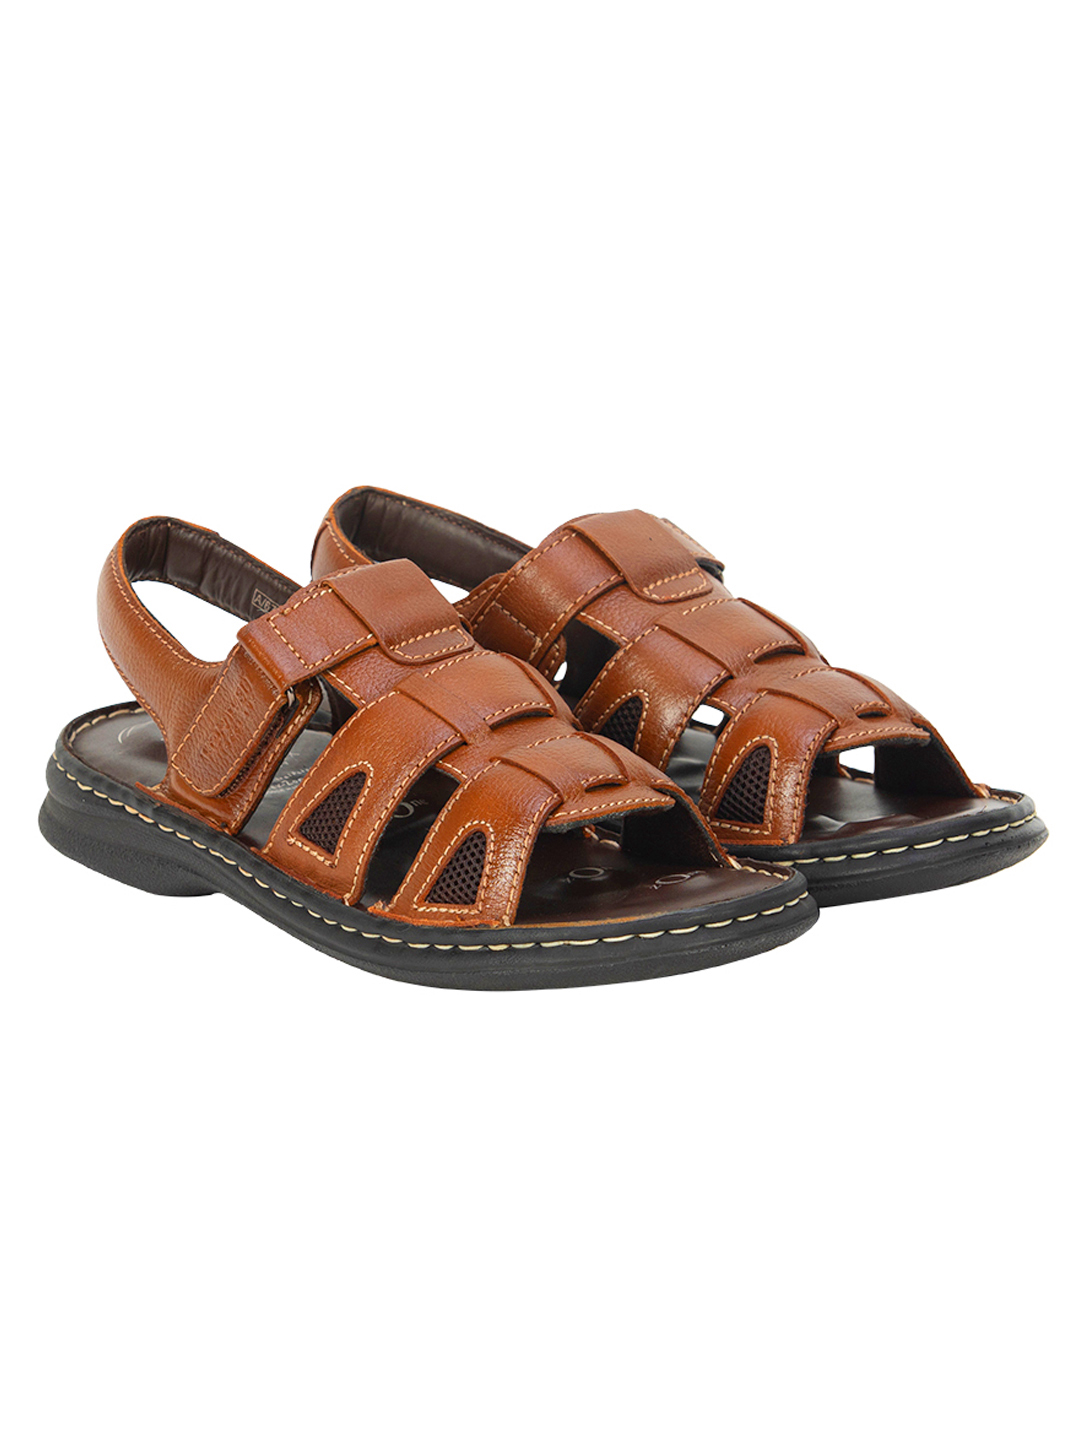 VON WELLX GERMANY COMFORT RHYS TAN SANDALS